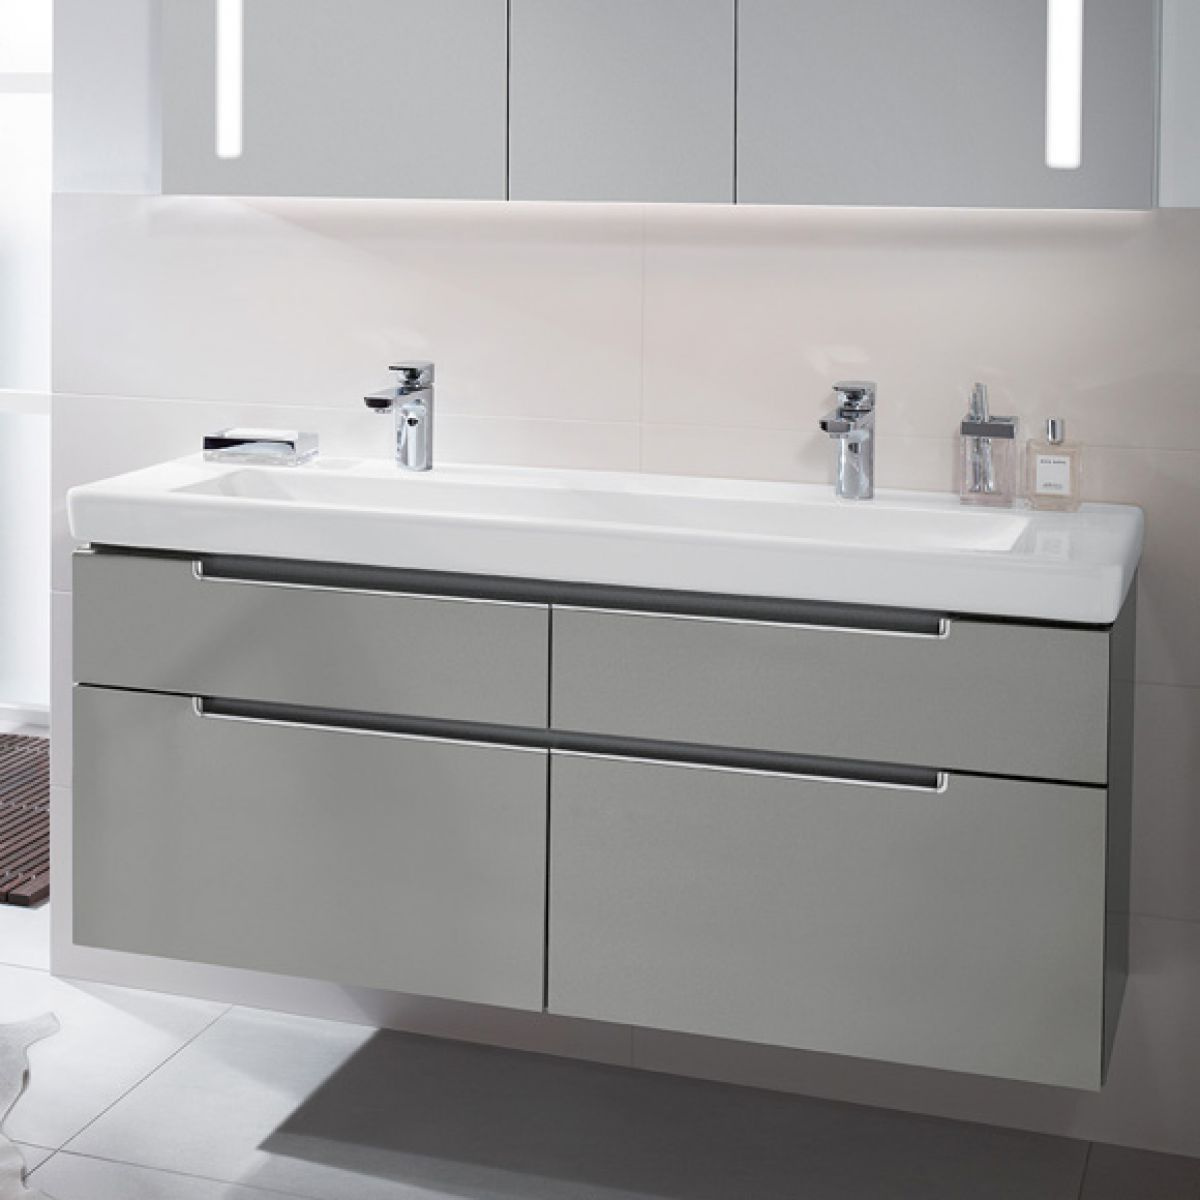 Villeroy Subway Villeroy And Boch Subway 2.0 Double Washbasin Vanity Unit